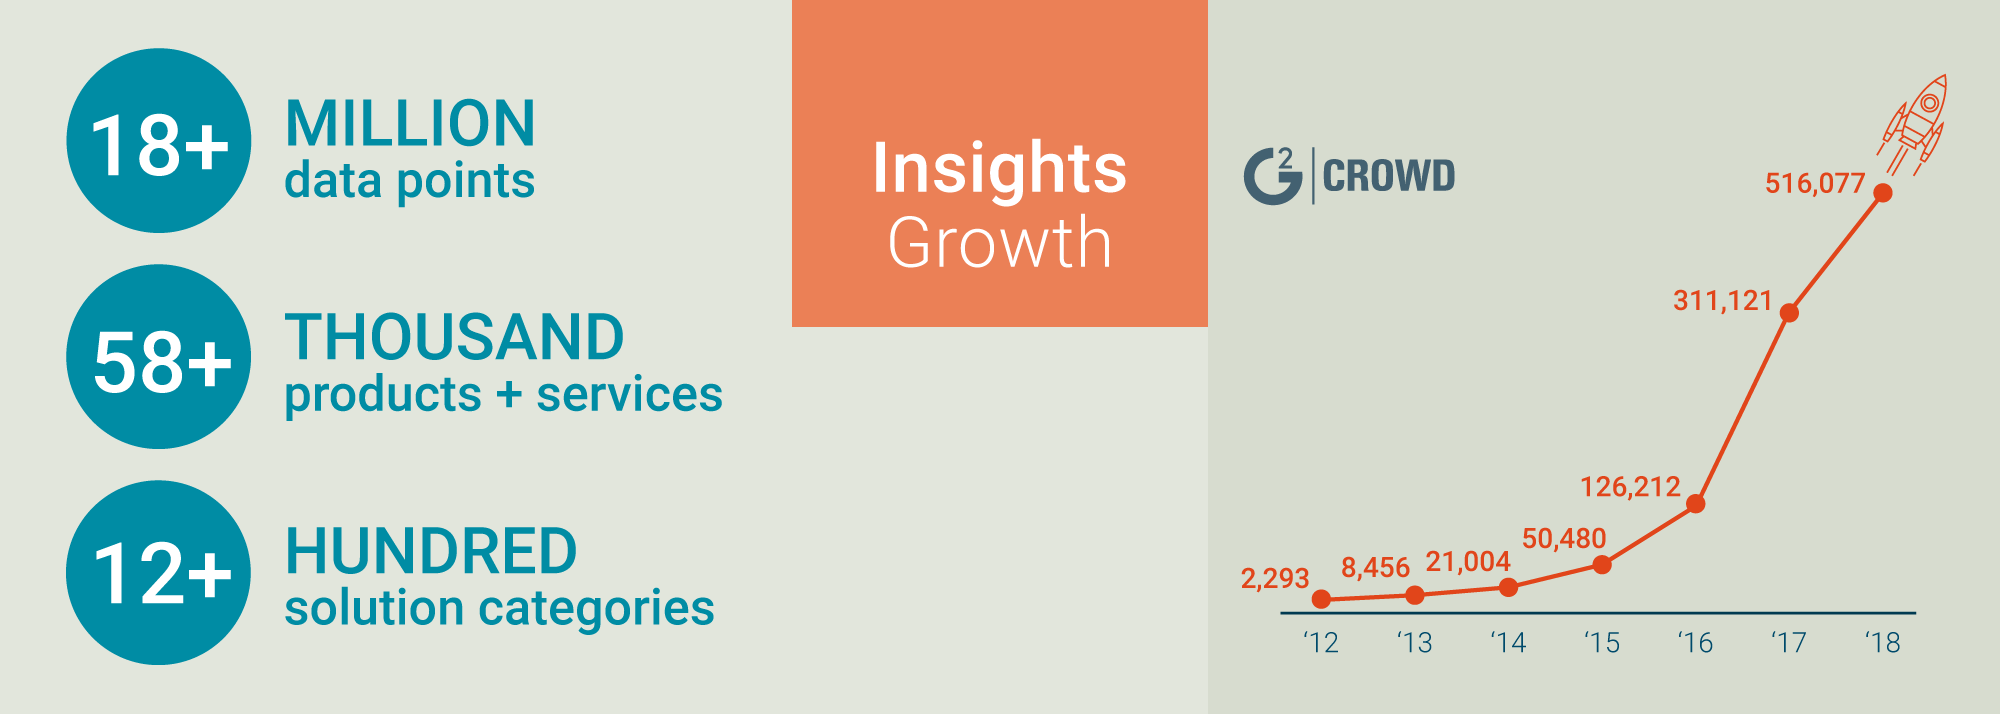 G2 Crowd Series C reviews growth count by year